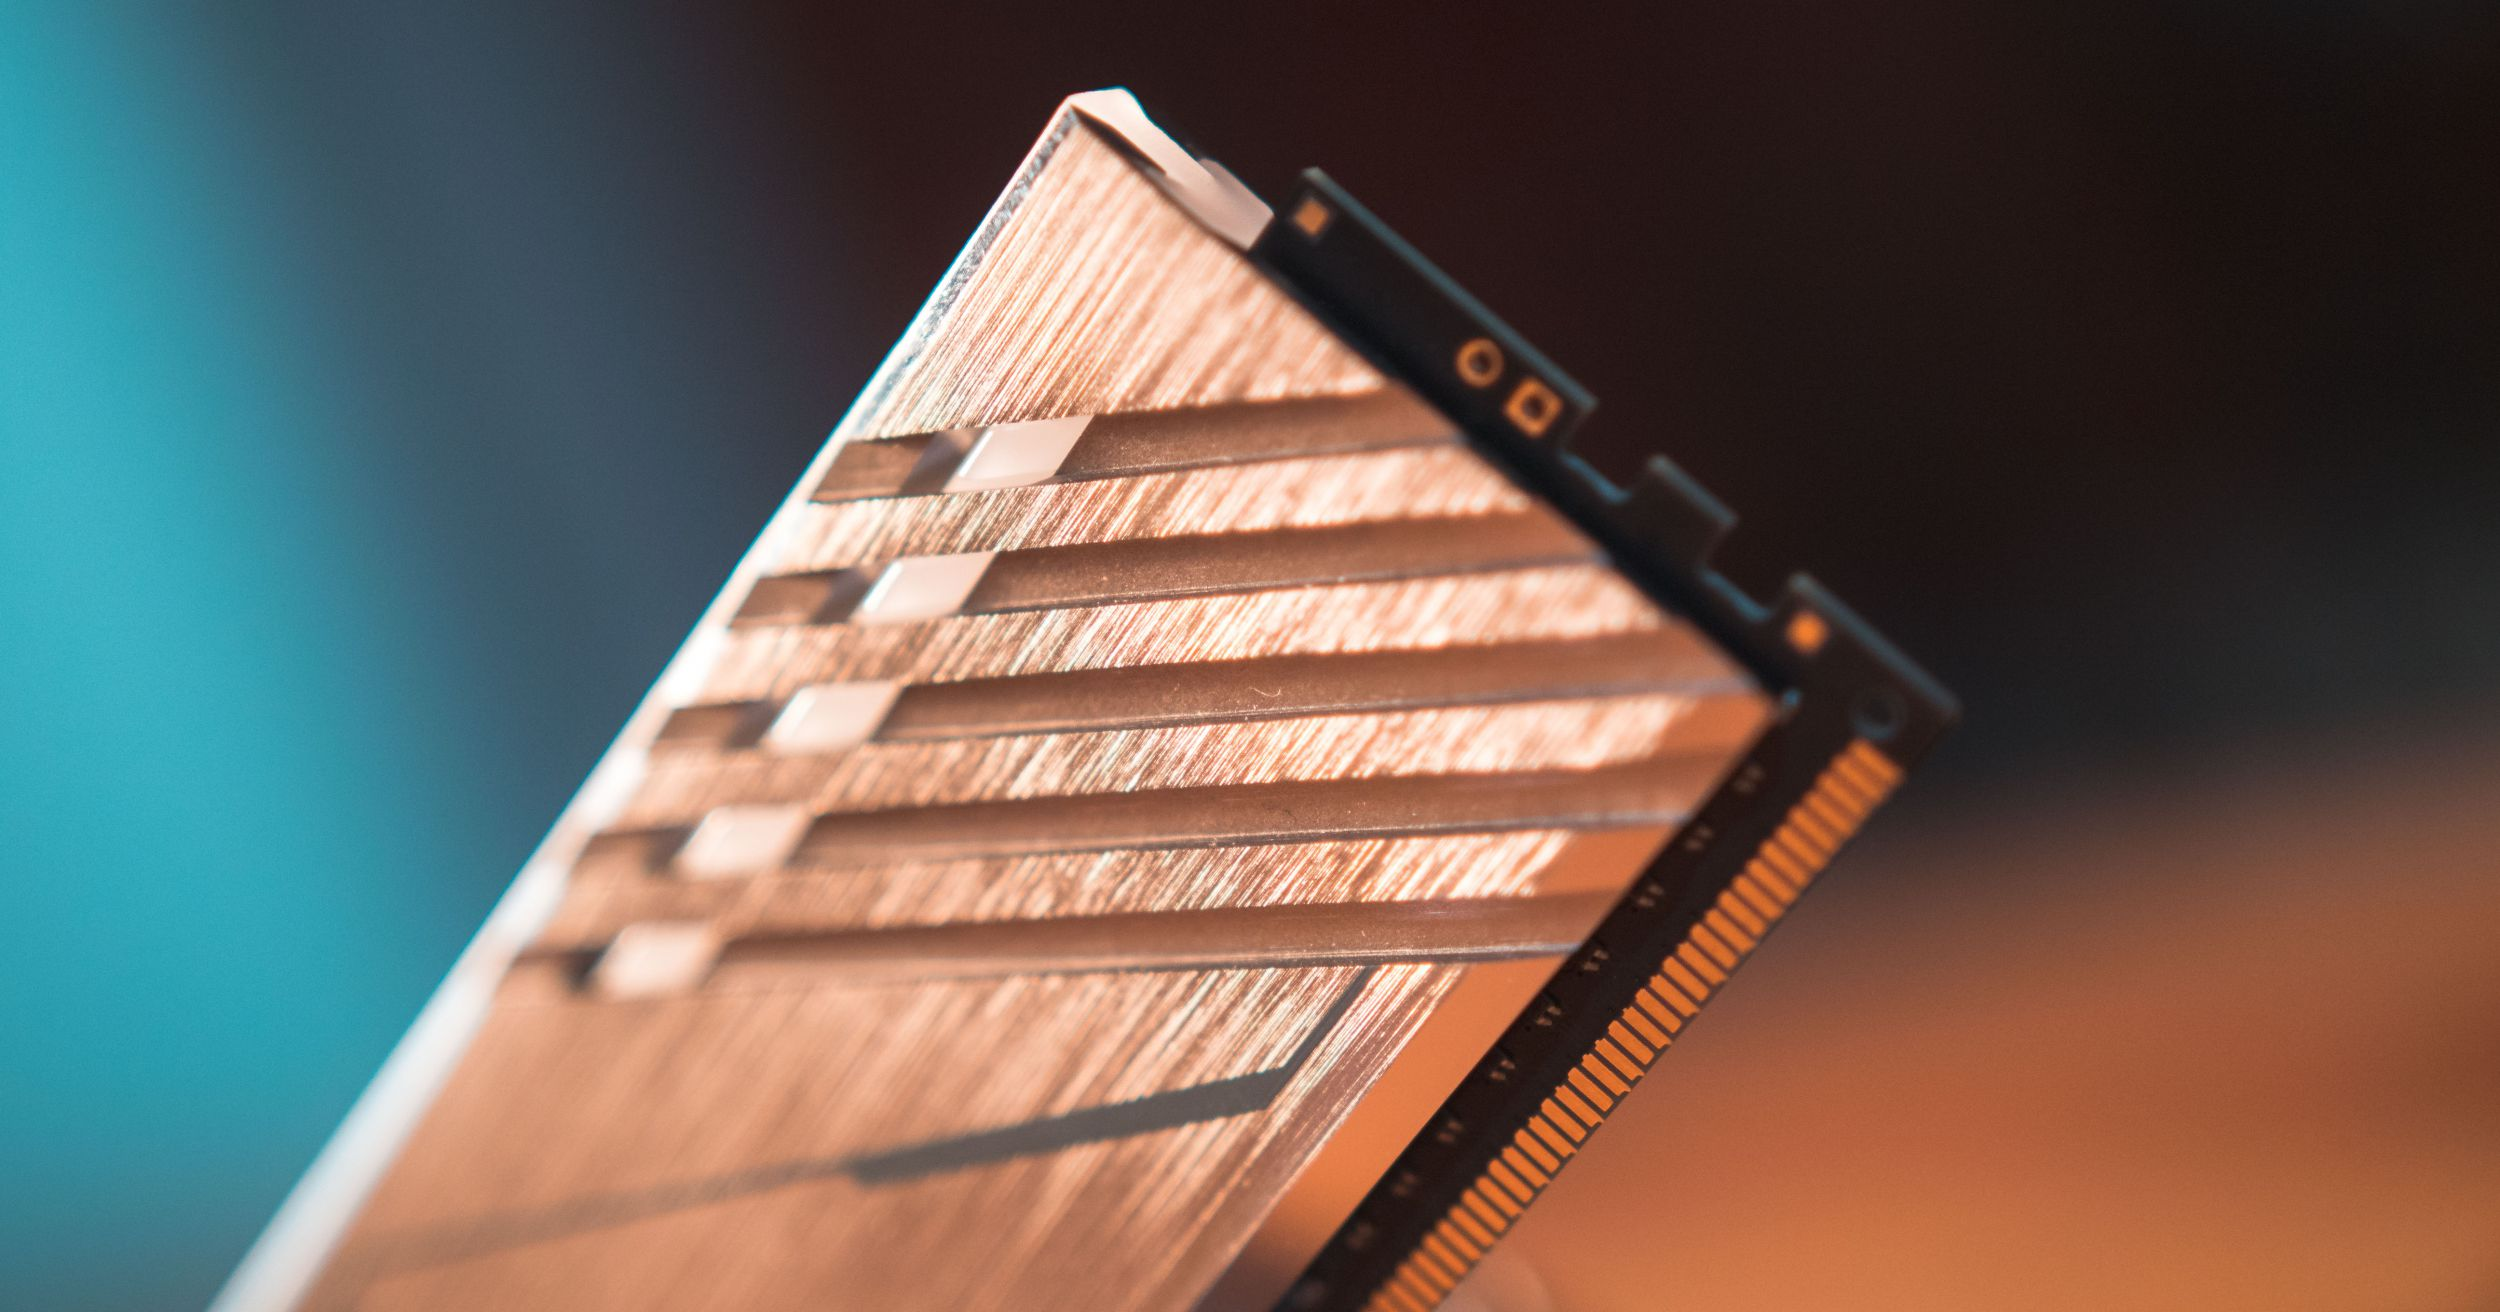 AORUS RAM equipped high-density aluminum heat spreaders